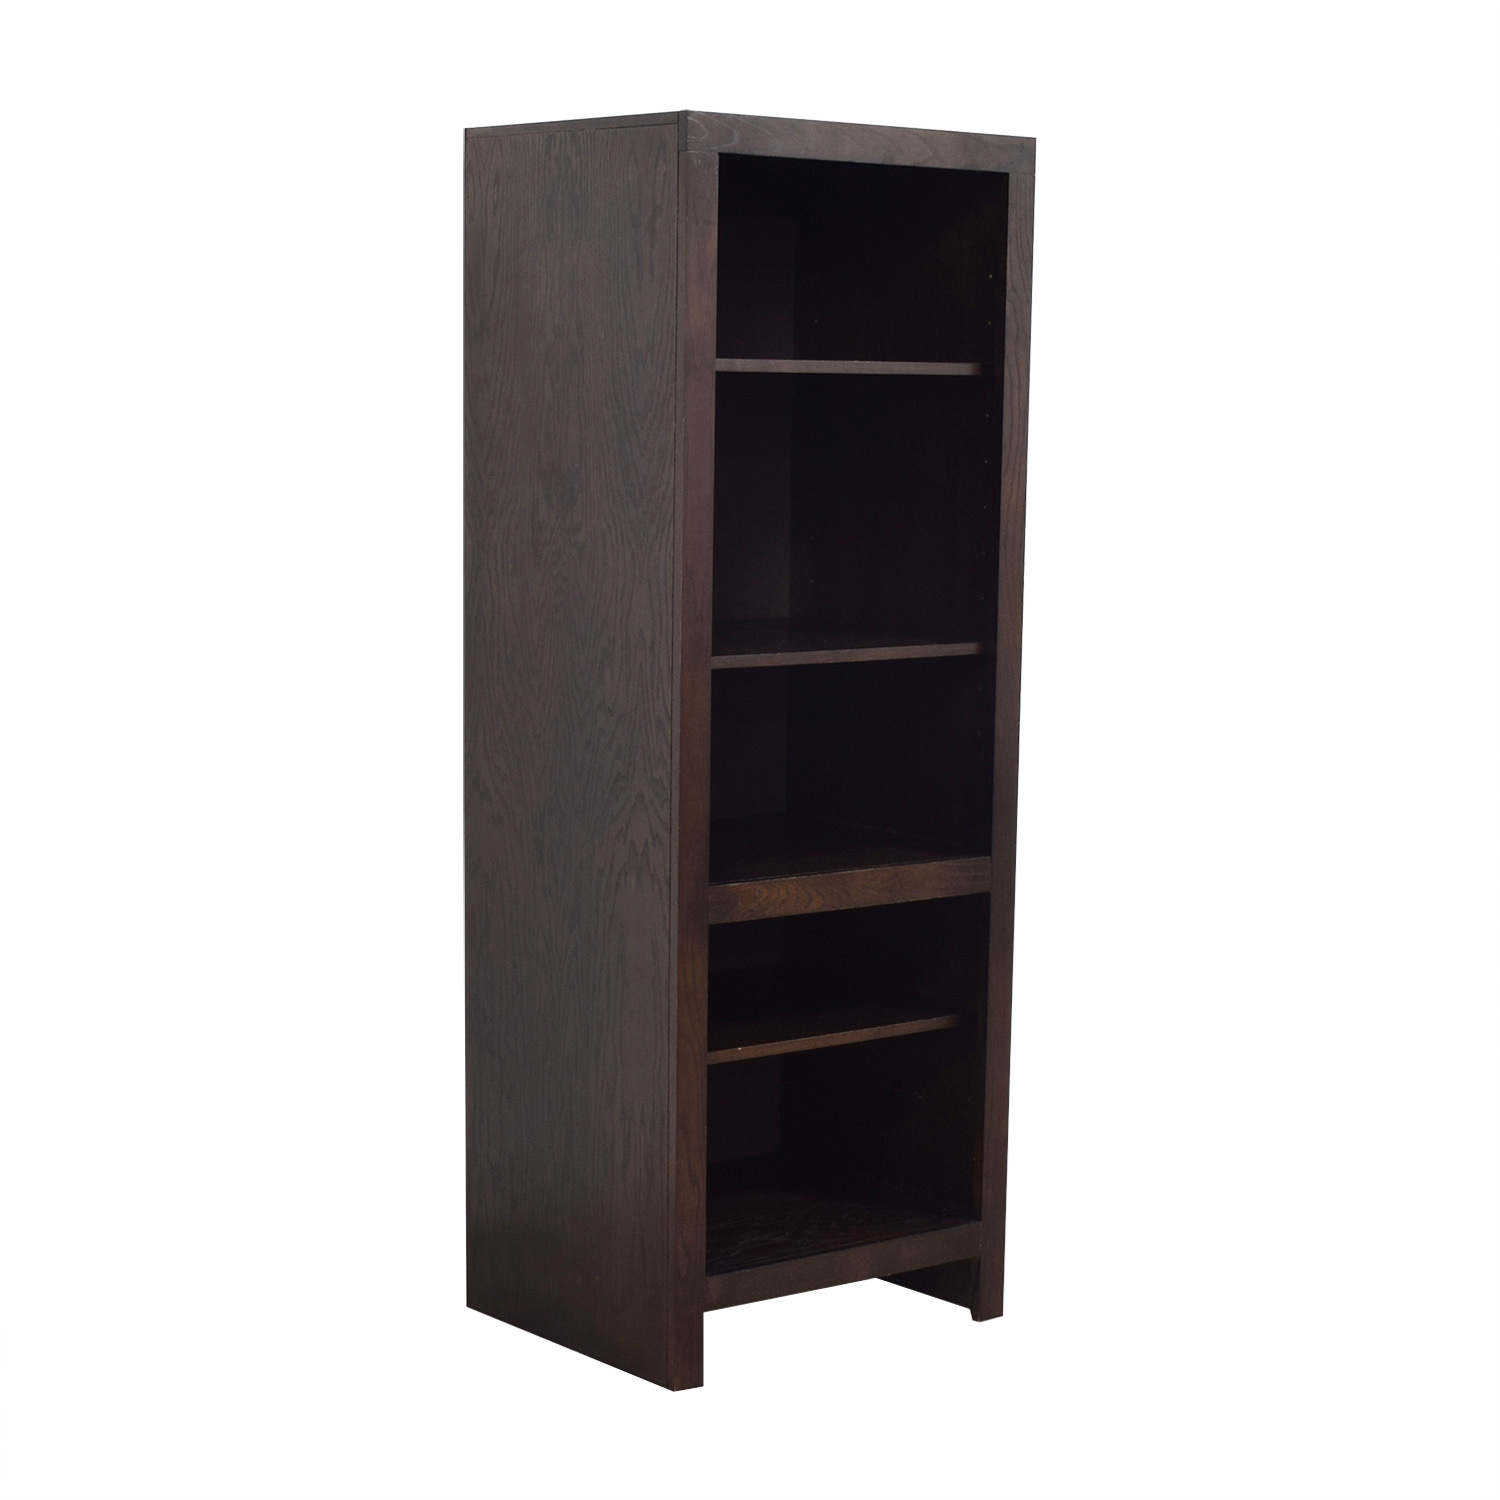 shop Golden Oak Del Mar Media Tower or Bookcase Golden Oak Storage